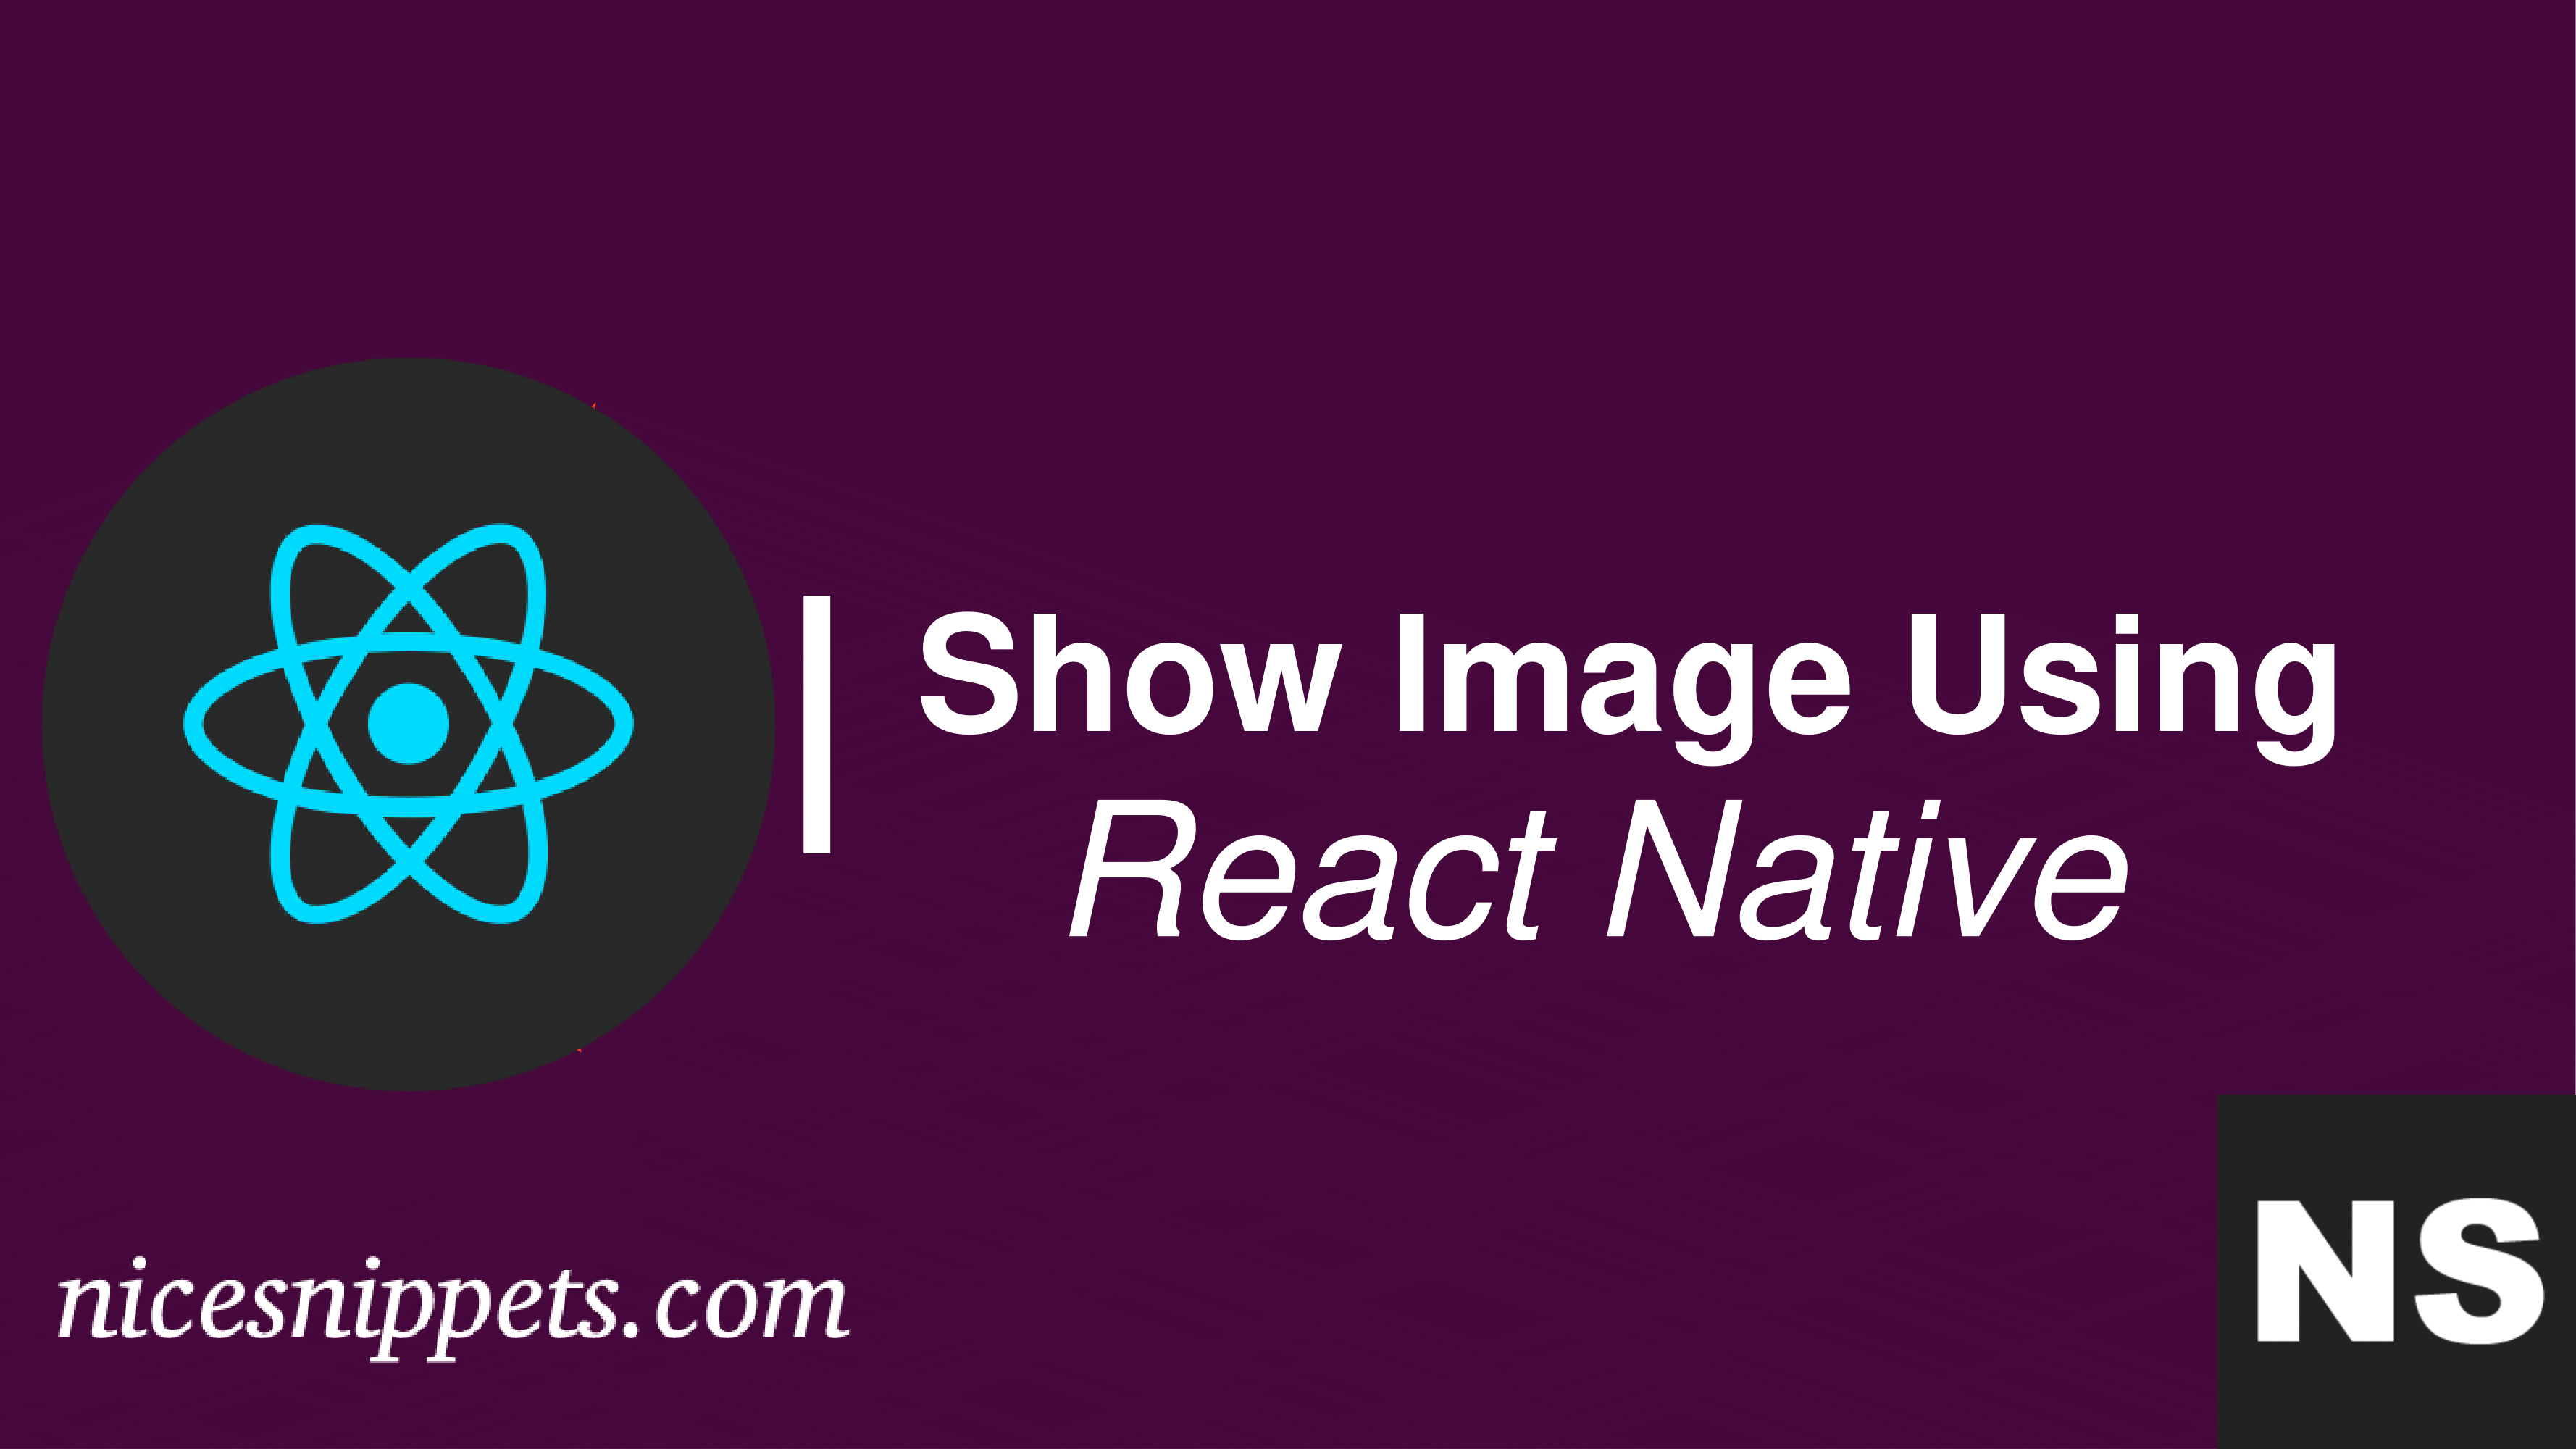 How to Show Image Using React Native?